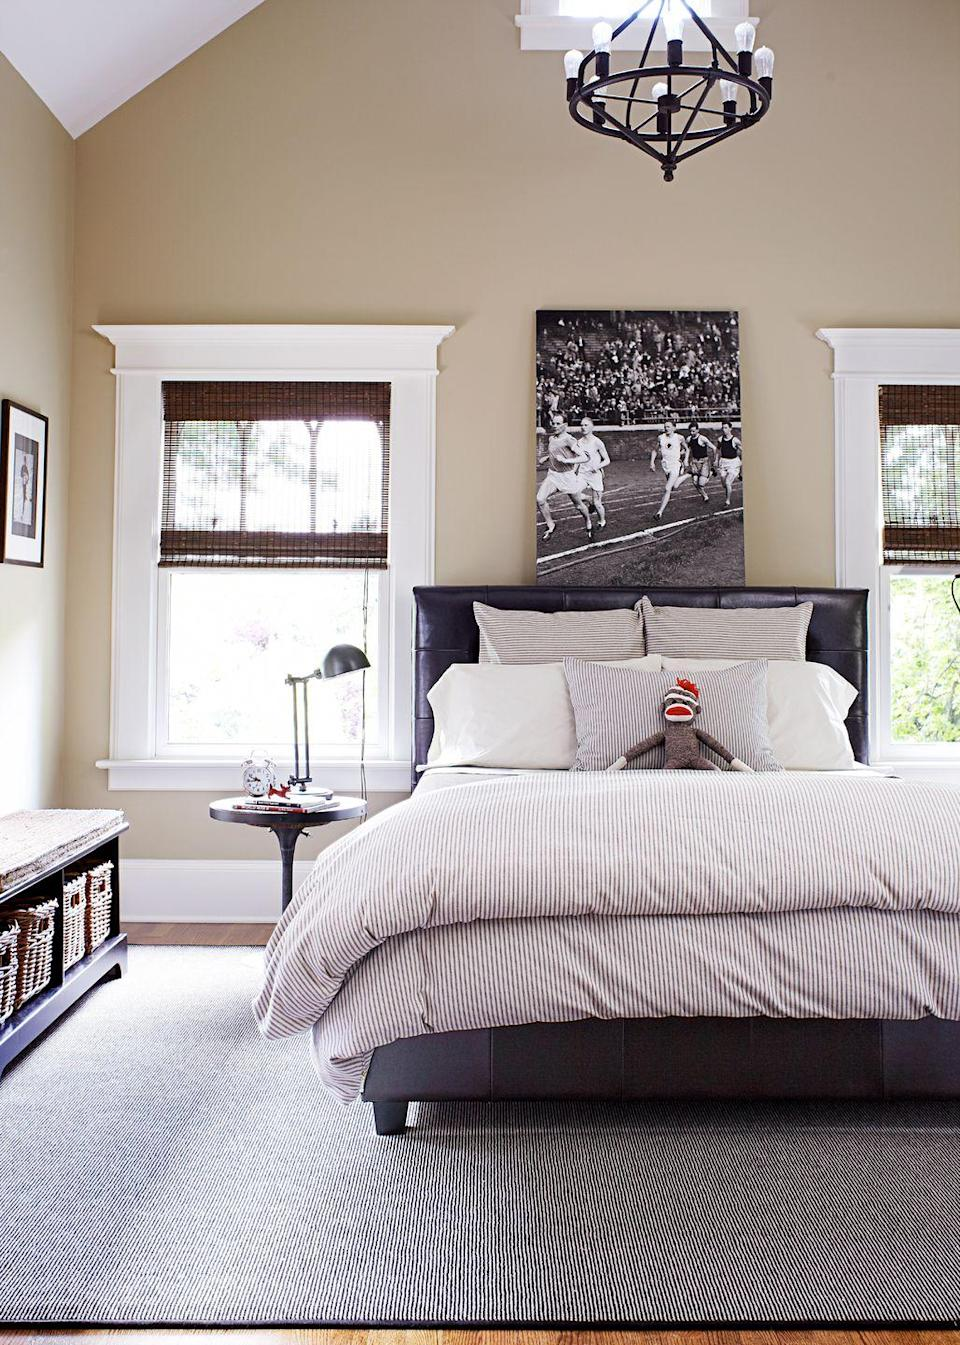 <p>Find one black-and-white photo that holds special meaning for you and let it be your bedroom's finishing touch. </p>